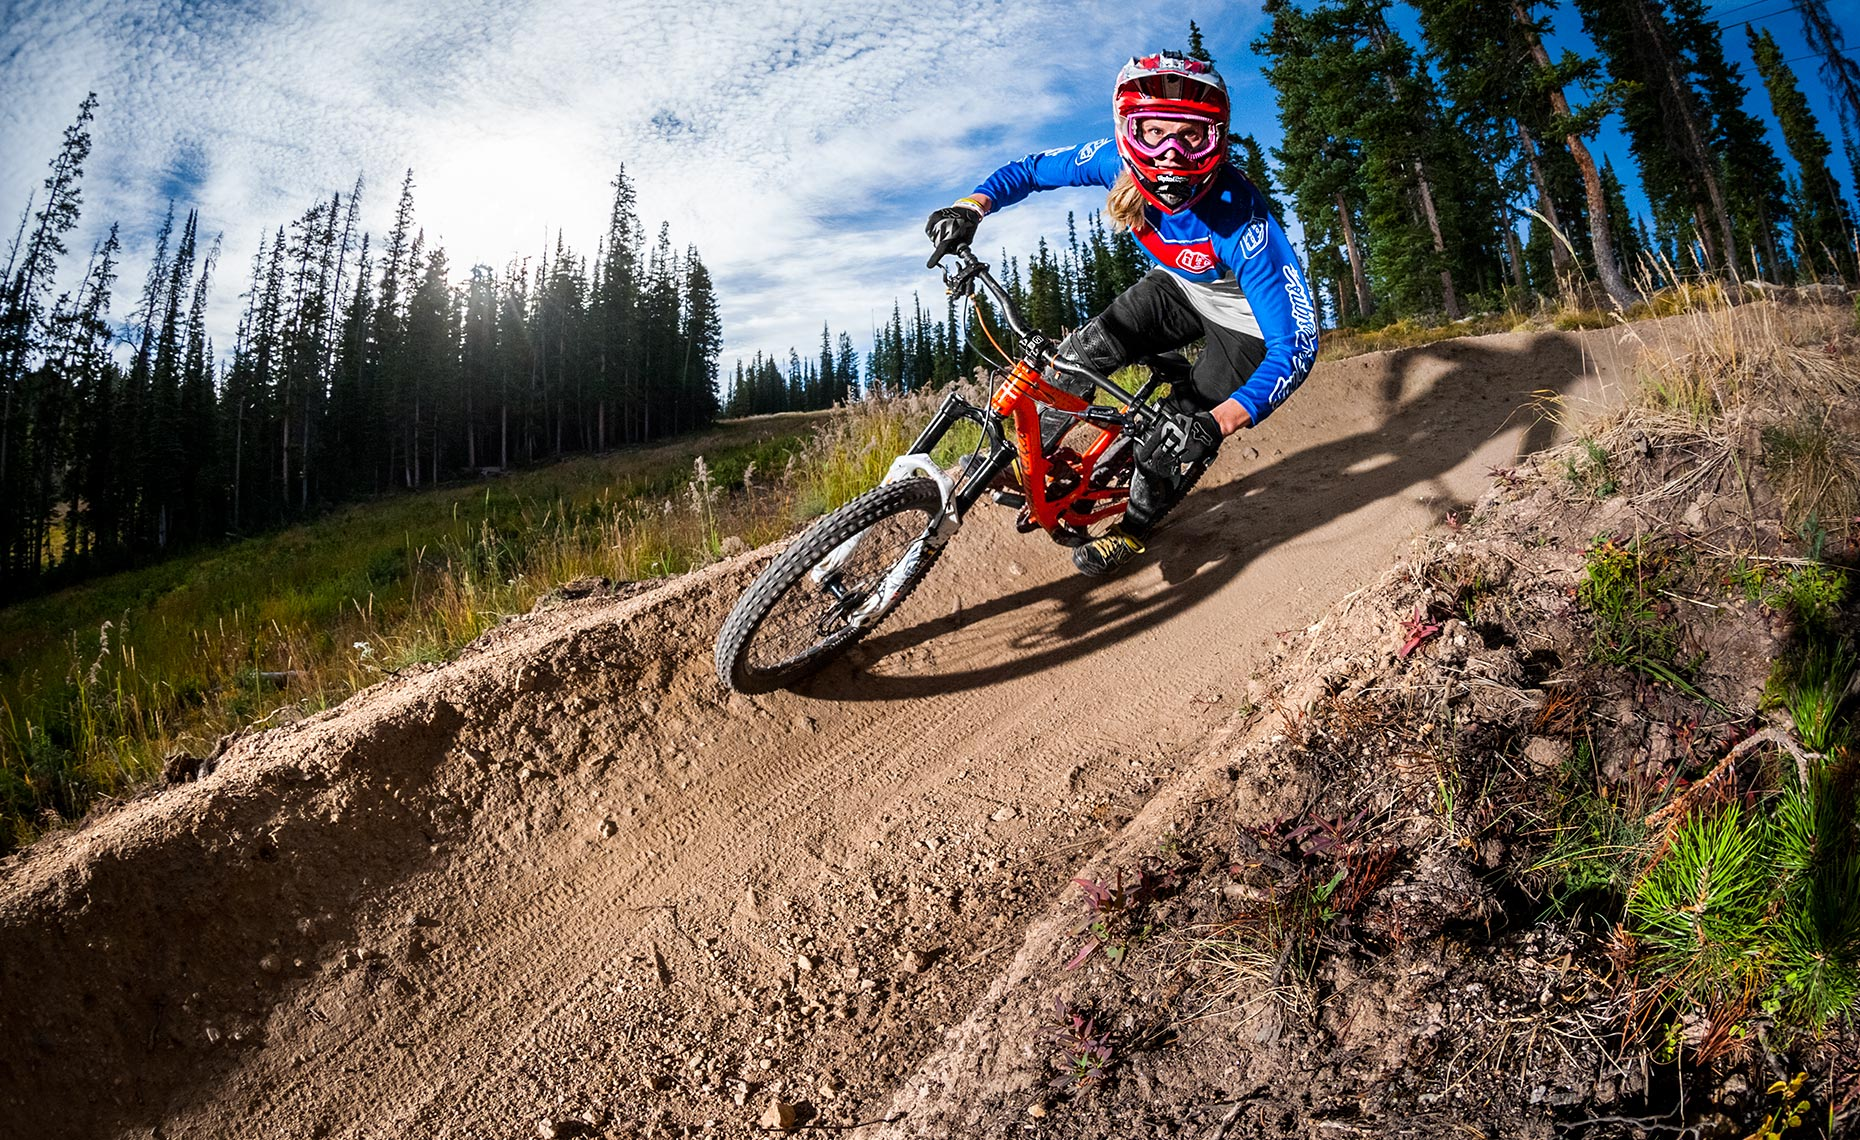 0624-Jacqueline-Thomas-Trestle-Bike-Park-Chris-Wellhausen-03-RGB